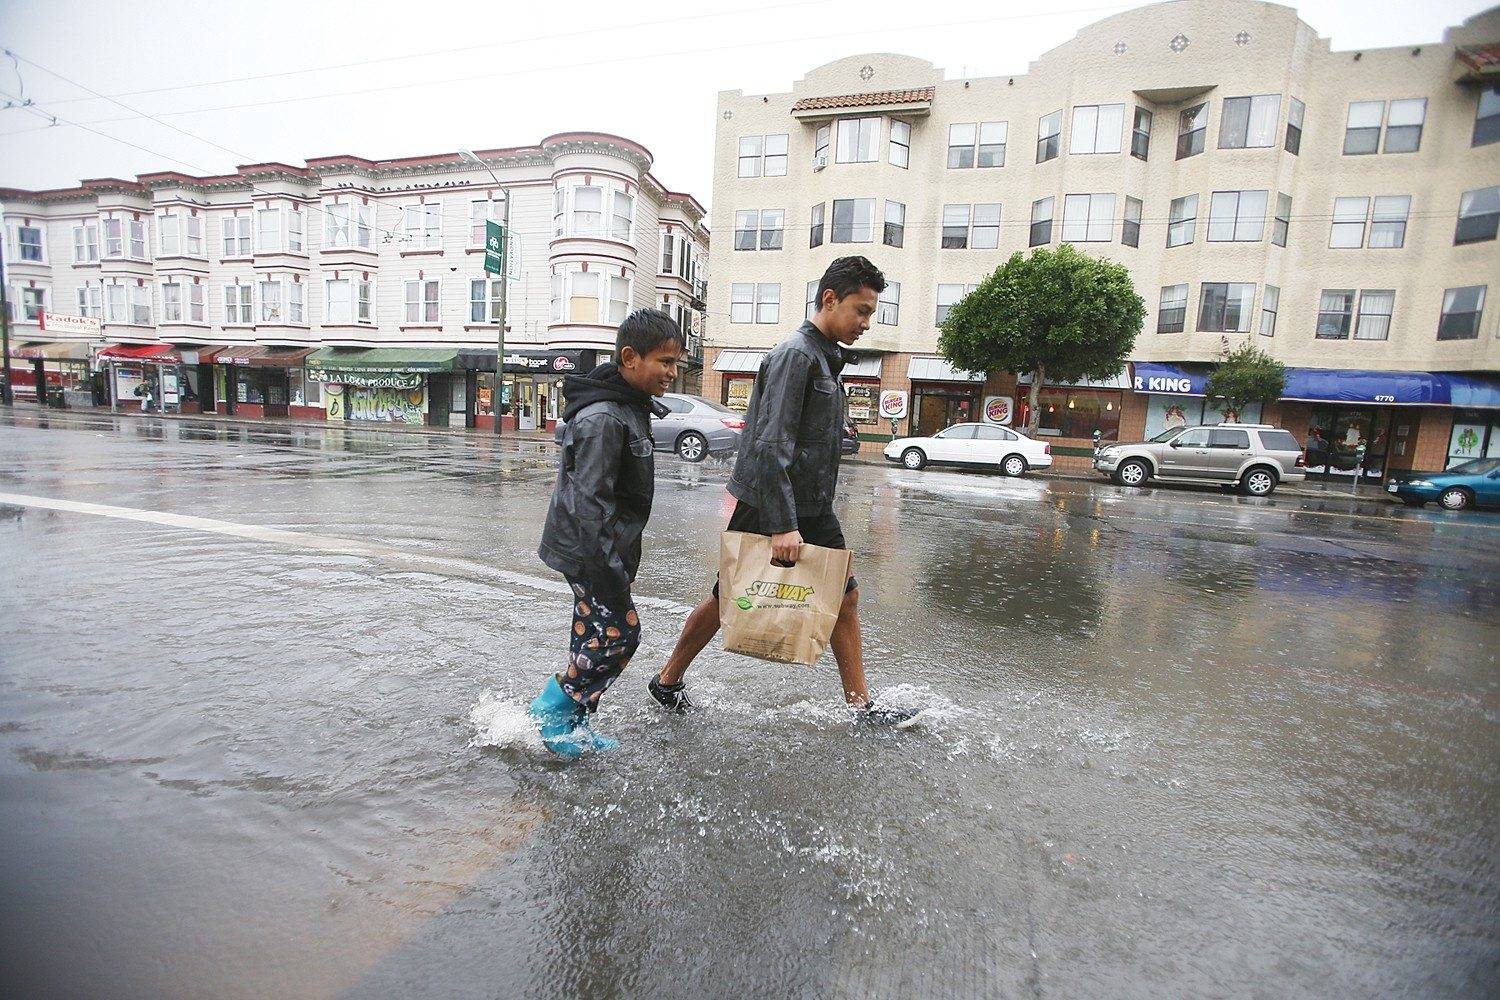 Two boys who had the day off from school due to a storm trudge through the water on Mission Street at Russia Avenue. (Mike Koozmin/2014 SF Examiner file photo)